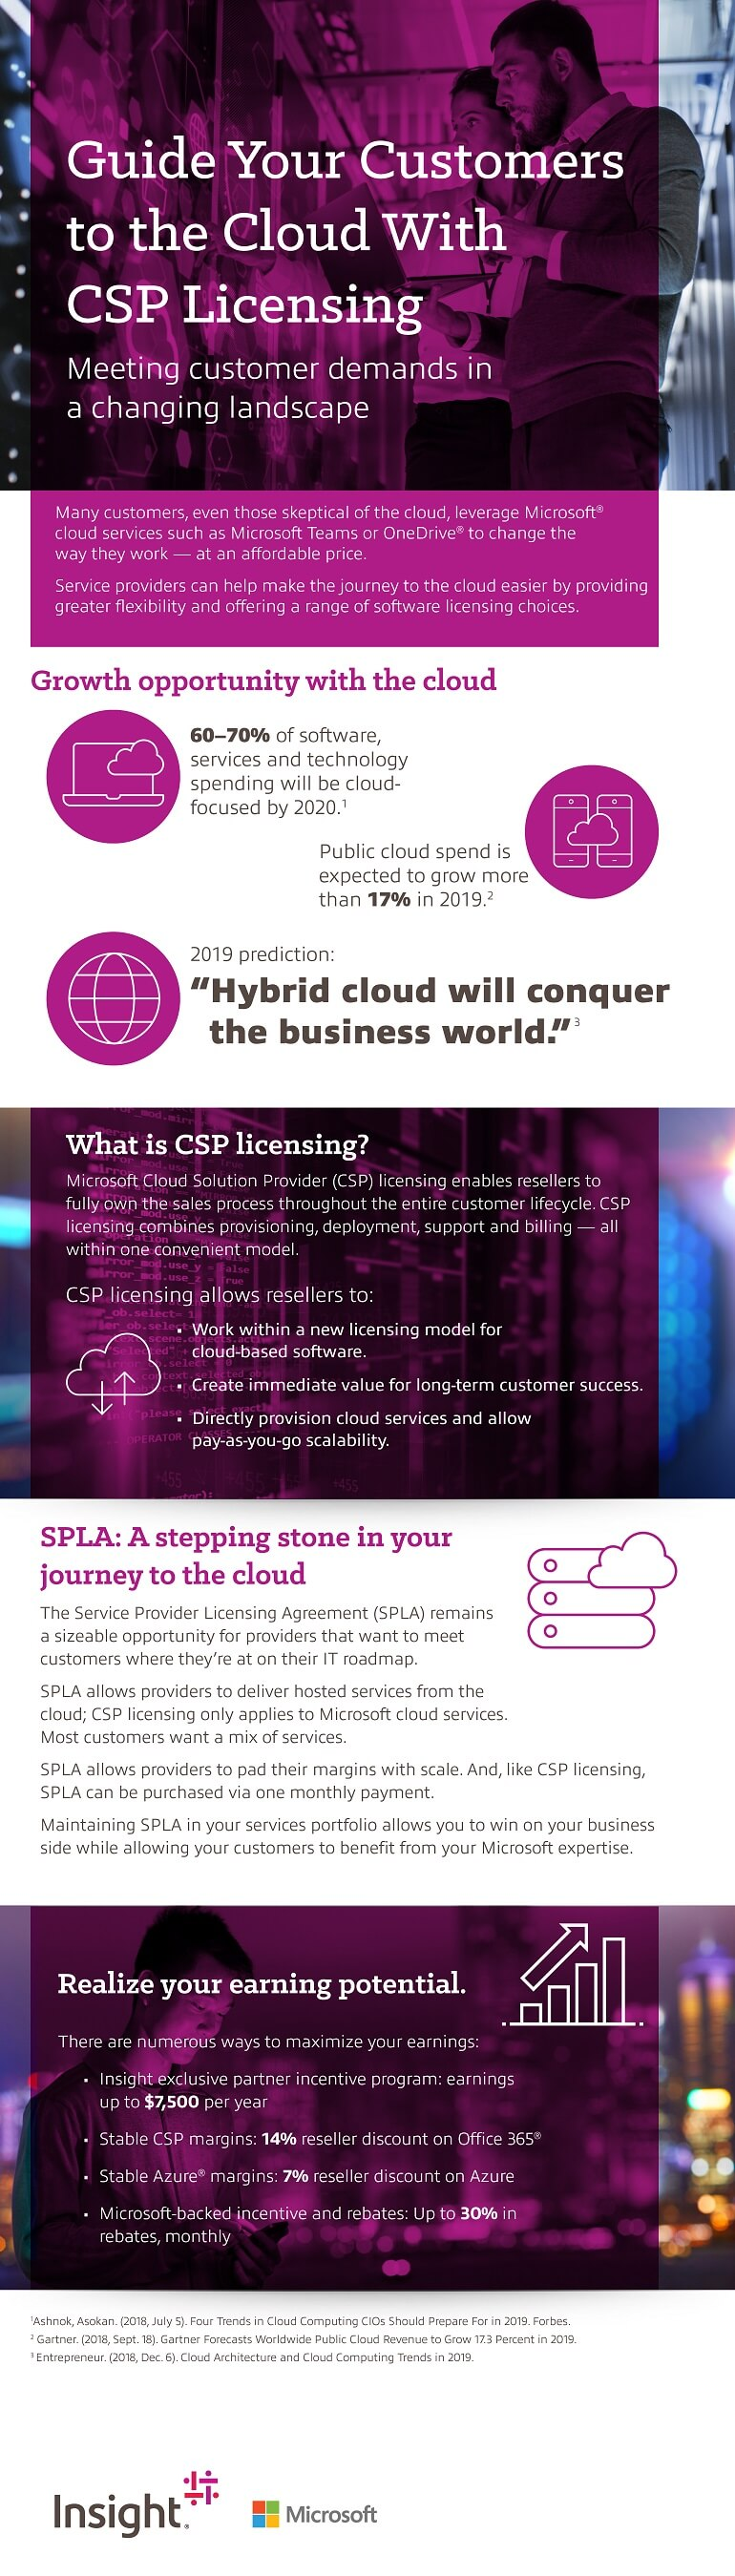 Infographic displaying the Migrate to the Cloud With CSP Licensing asset